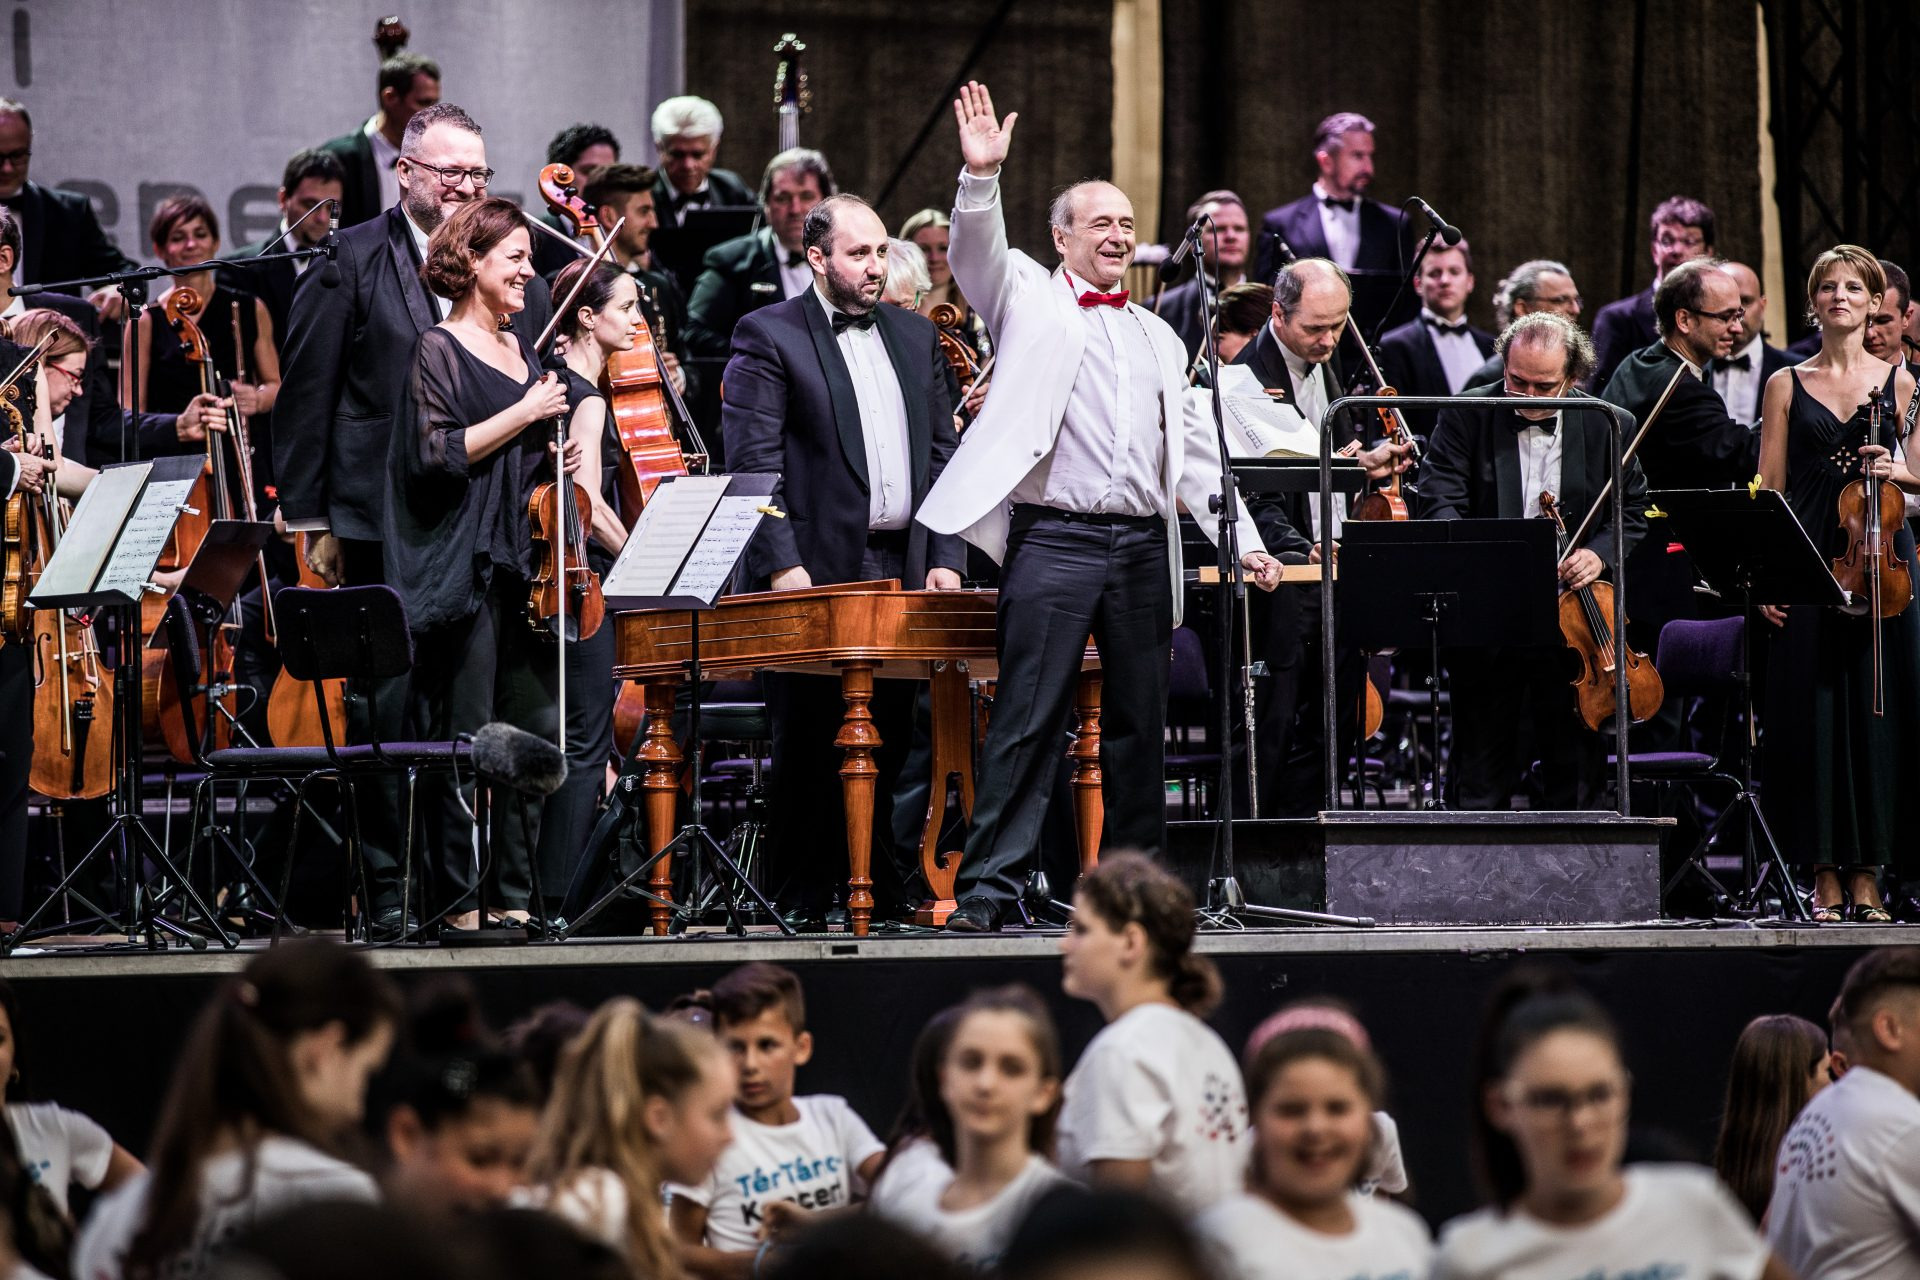 The Budapest Festival Orchestra